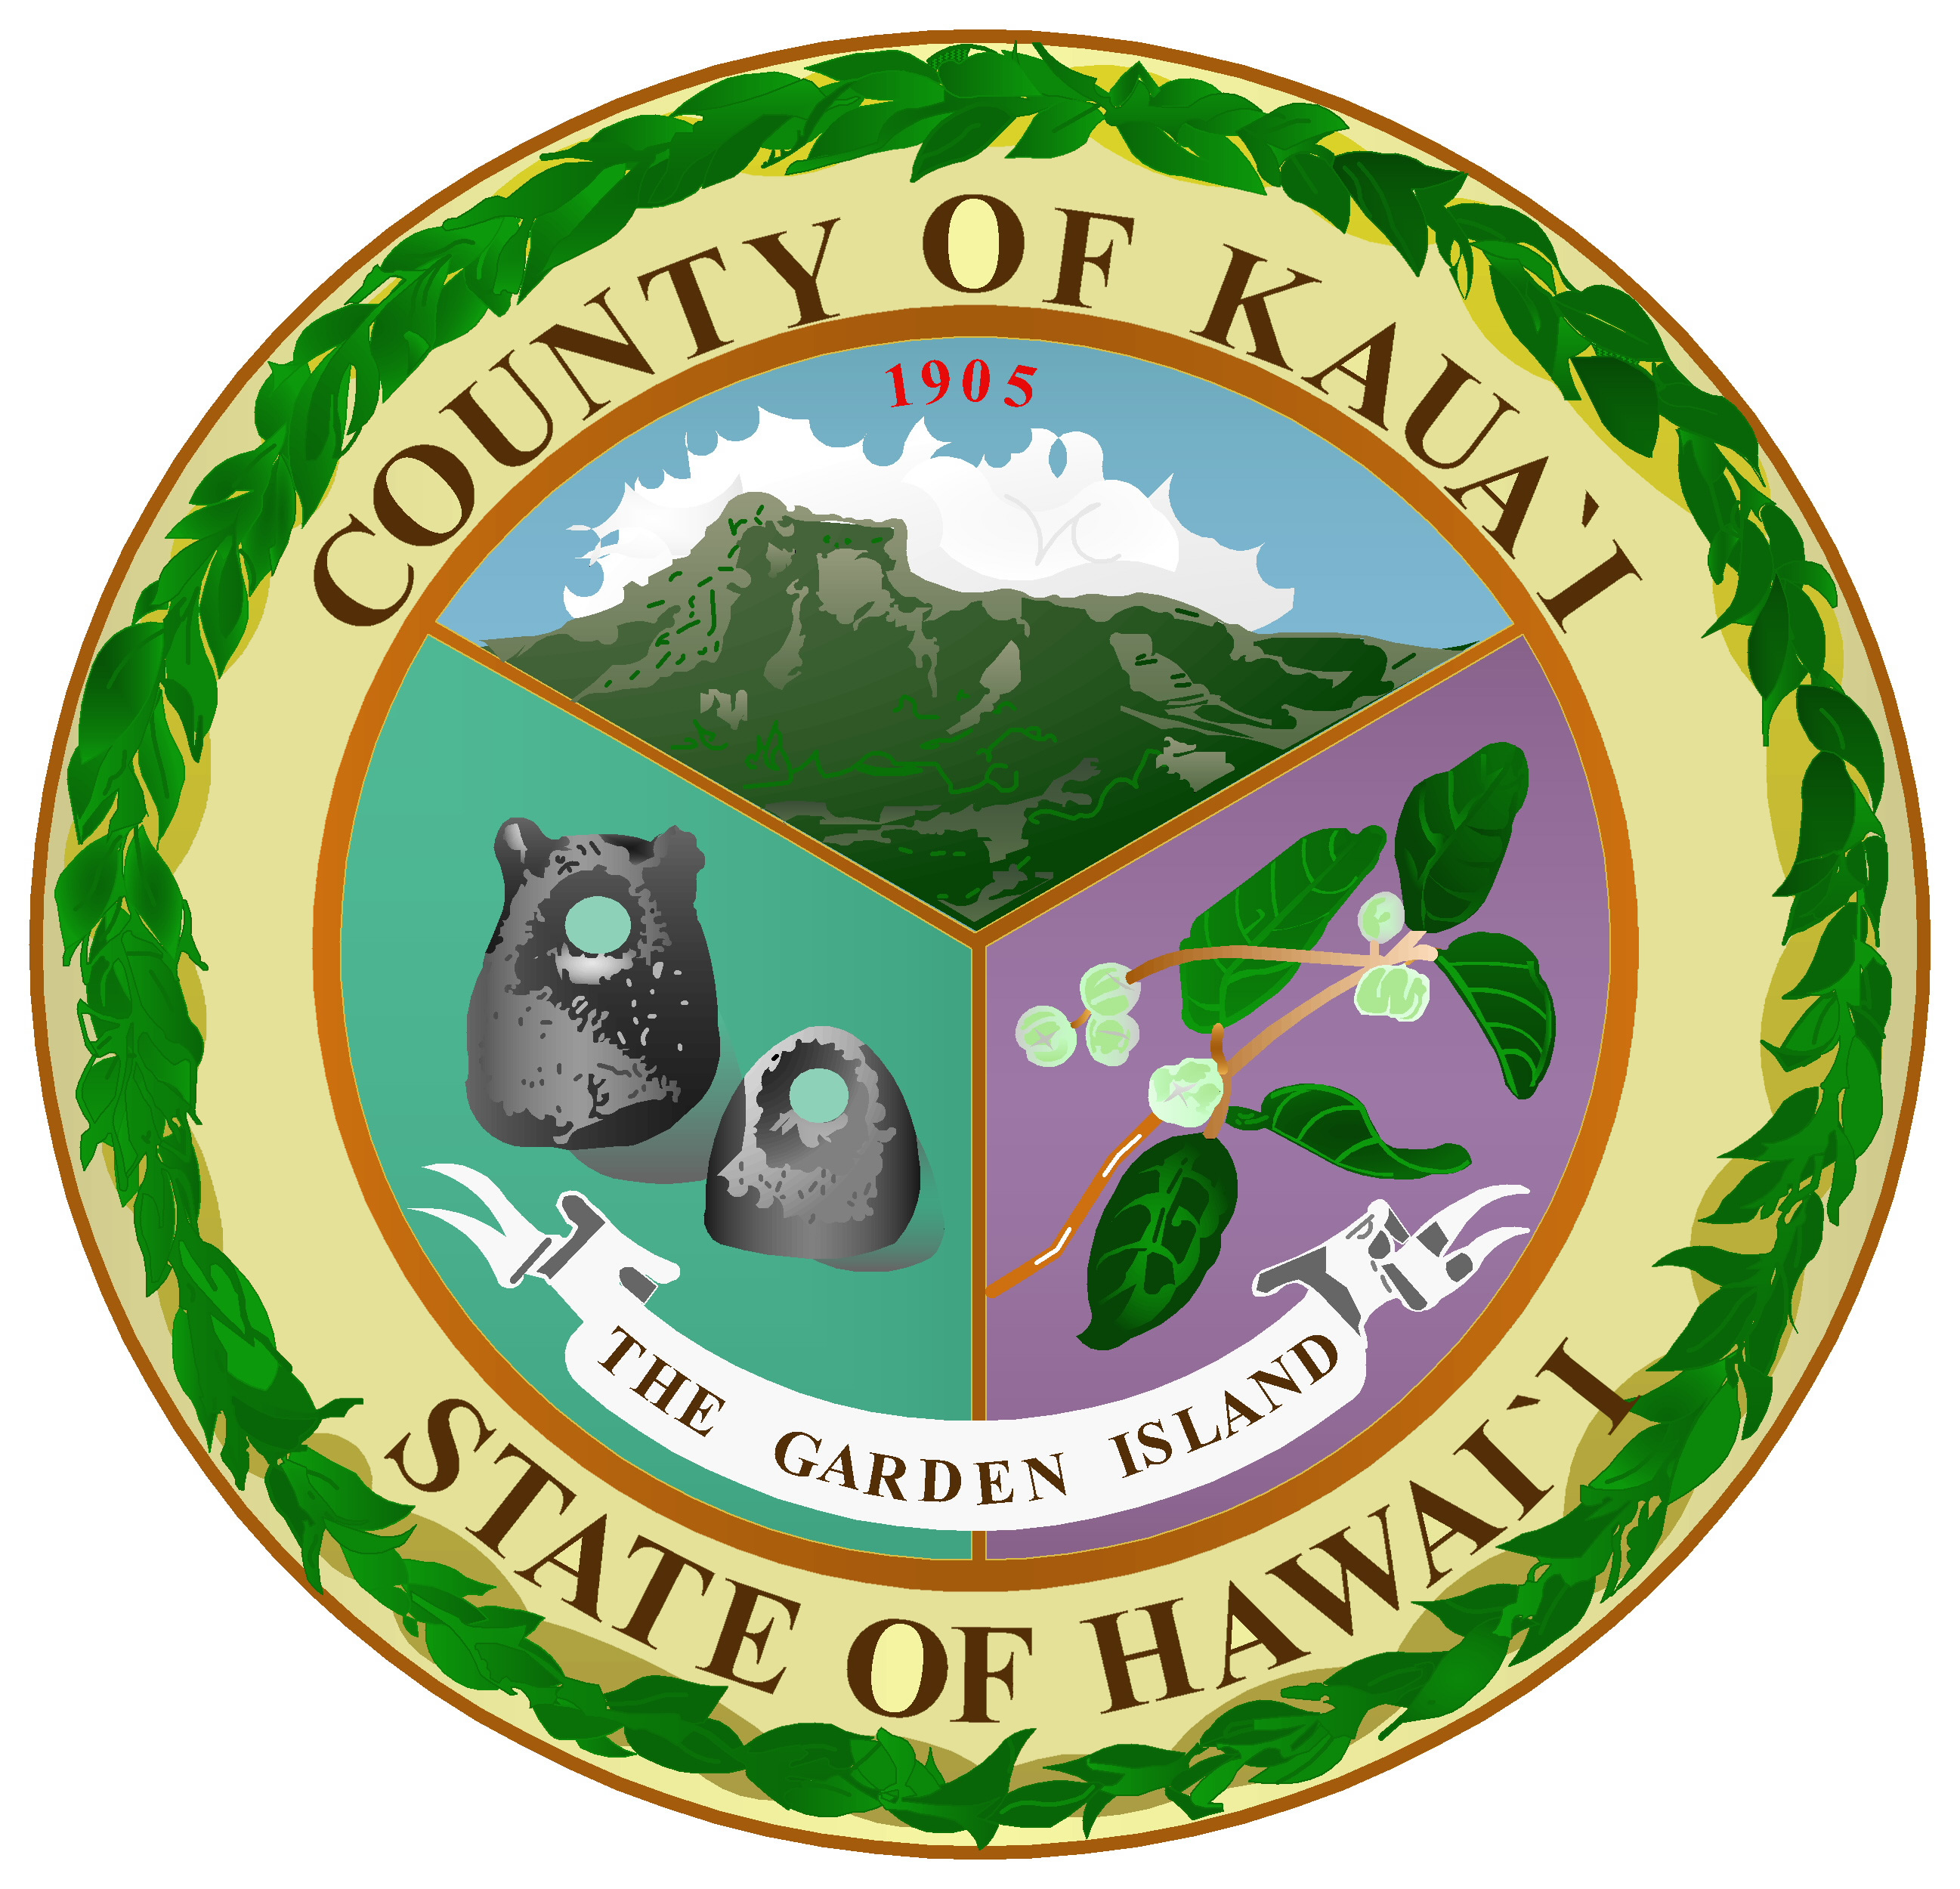 Free mental health counseling now available for Kaua'i residents of all ages